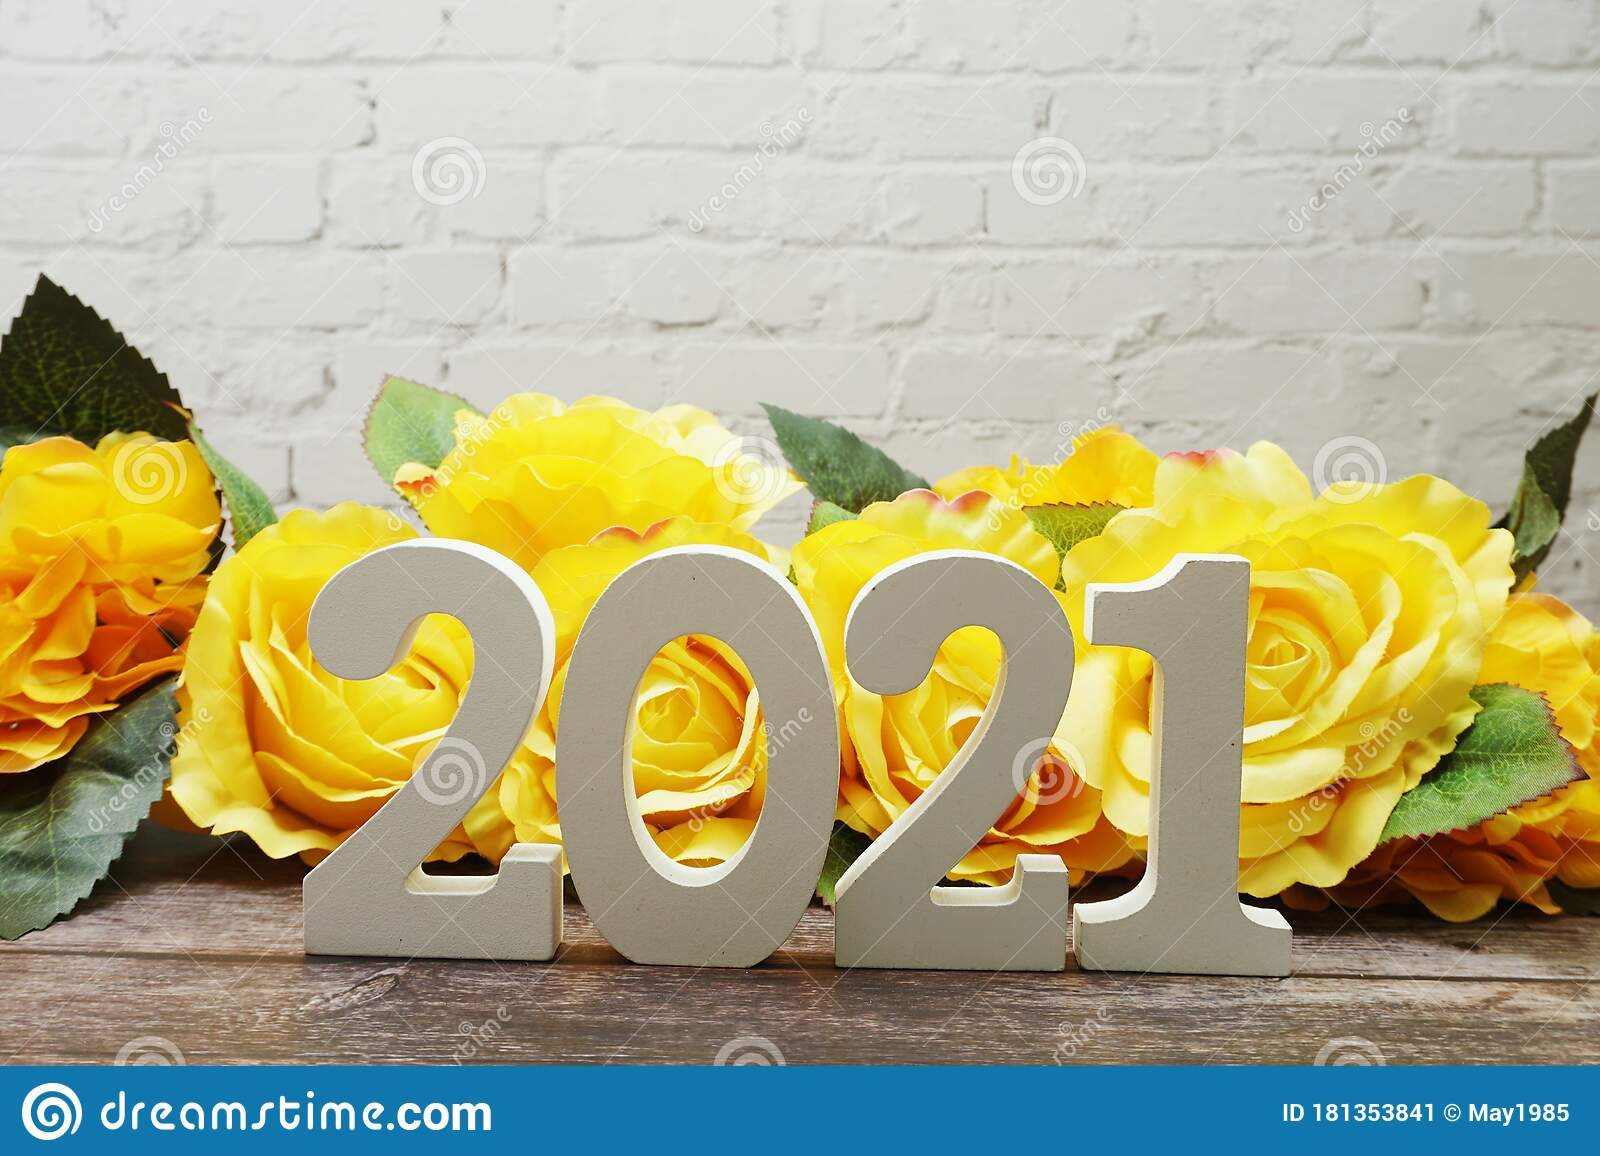 Happy New Year 2021 Letters With Roses Flower Decoration ...